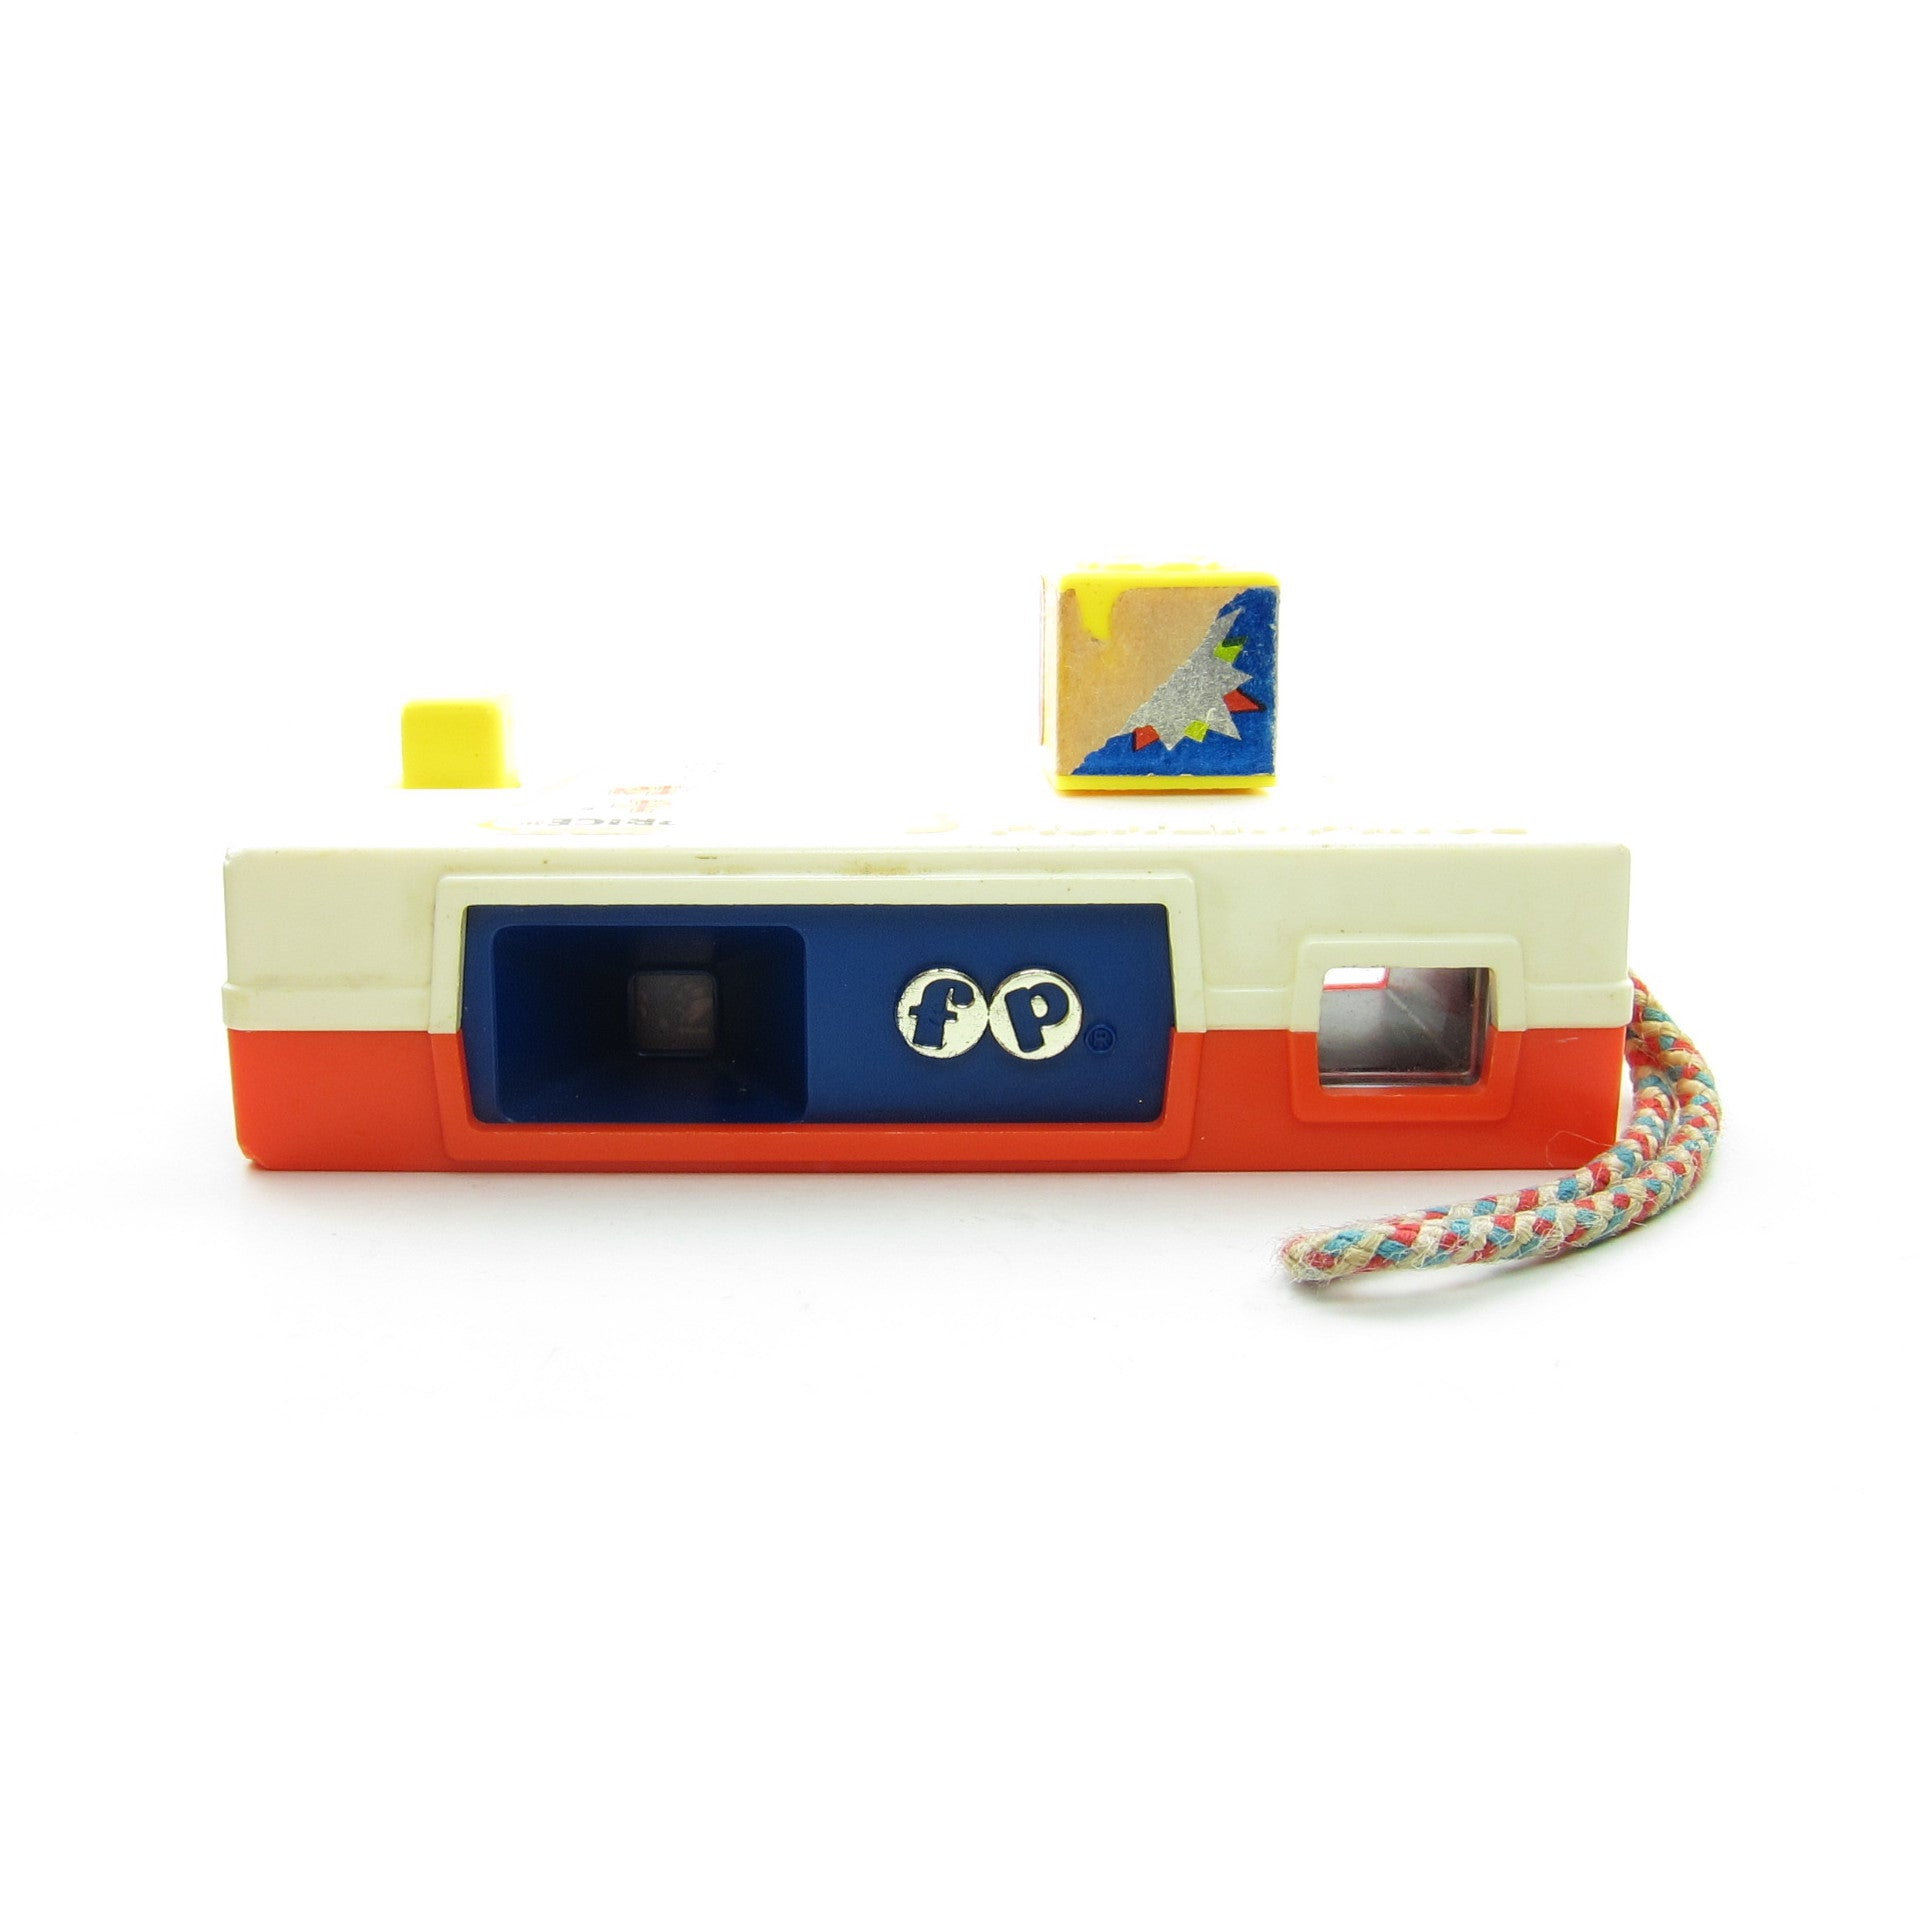 Fisher-Price vintage 1973 Pocket Camera with zoo pictures